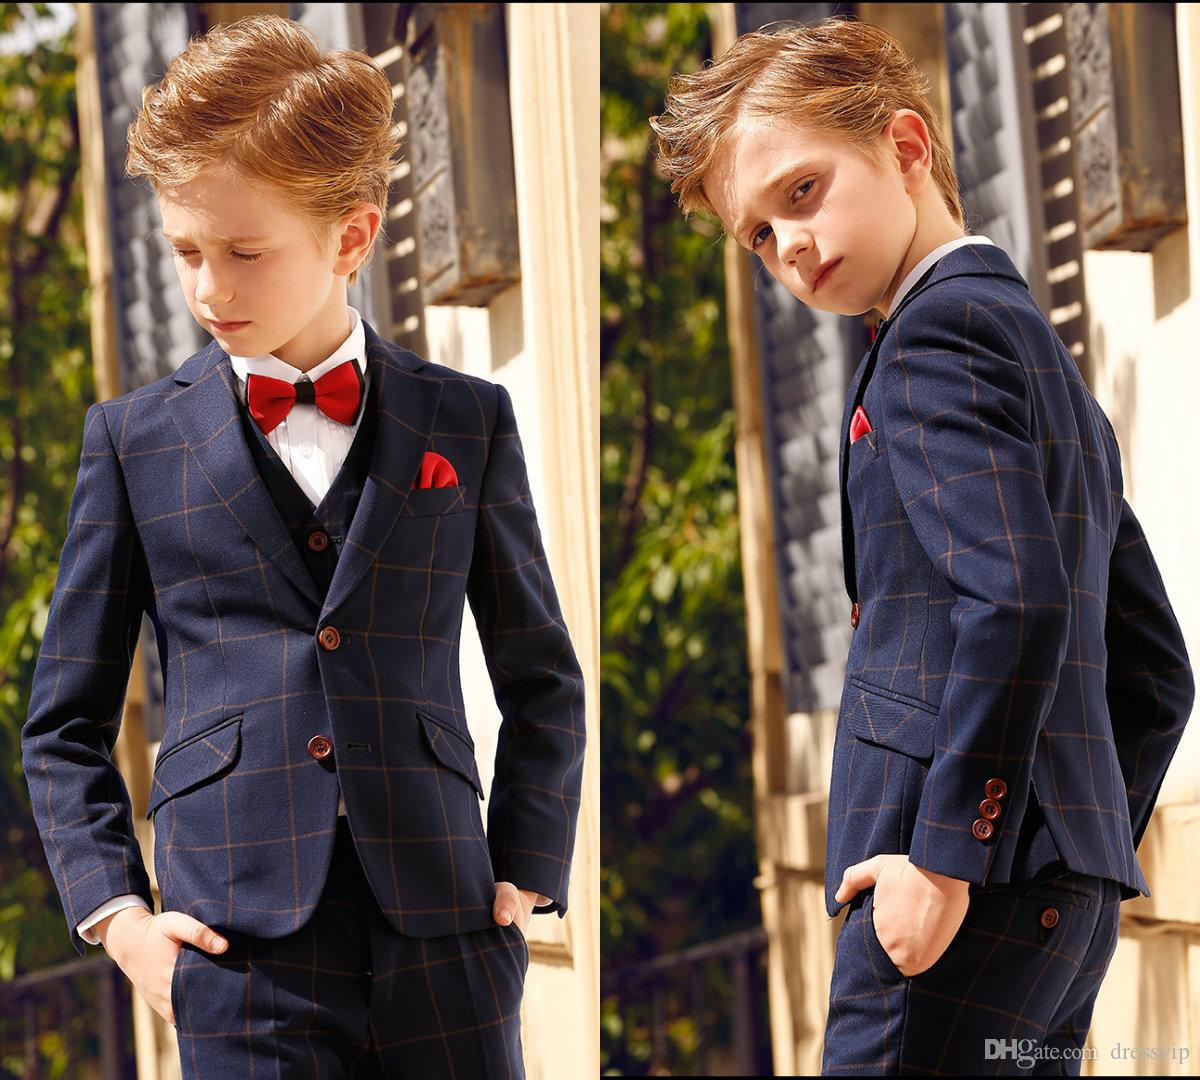 Four Piece Kids Wedding Suits New Arrival Peaked Lapel Custom Made Boys Formal Wear (Jacket + Pants +Pocket Square +Bow Tie) Gowns For Boys